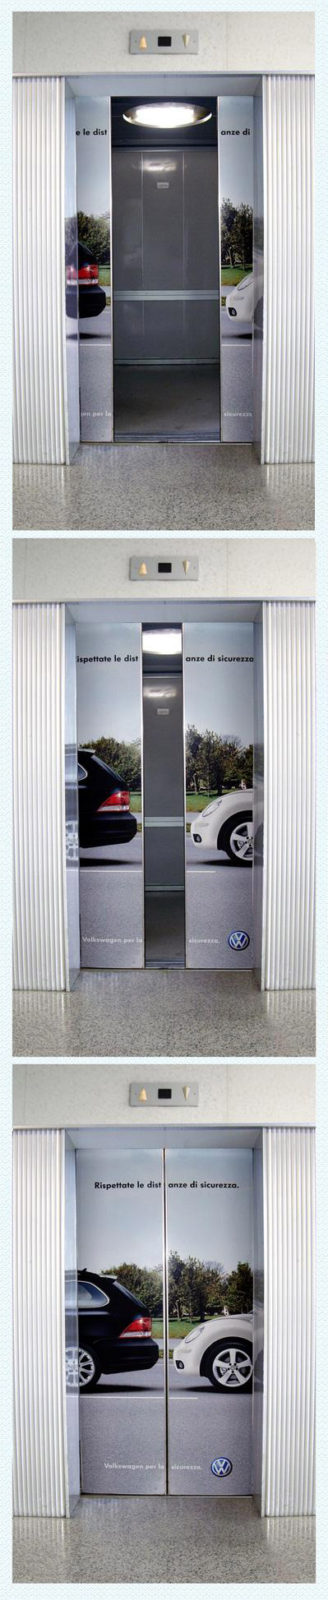 elevator doors simulate cars parking safely VW